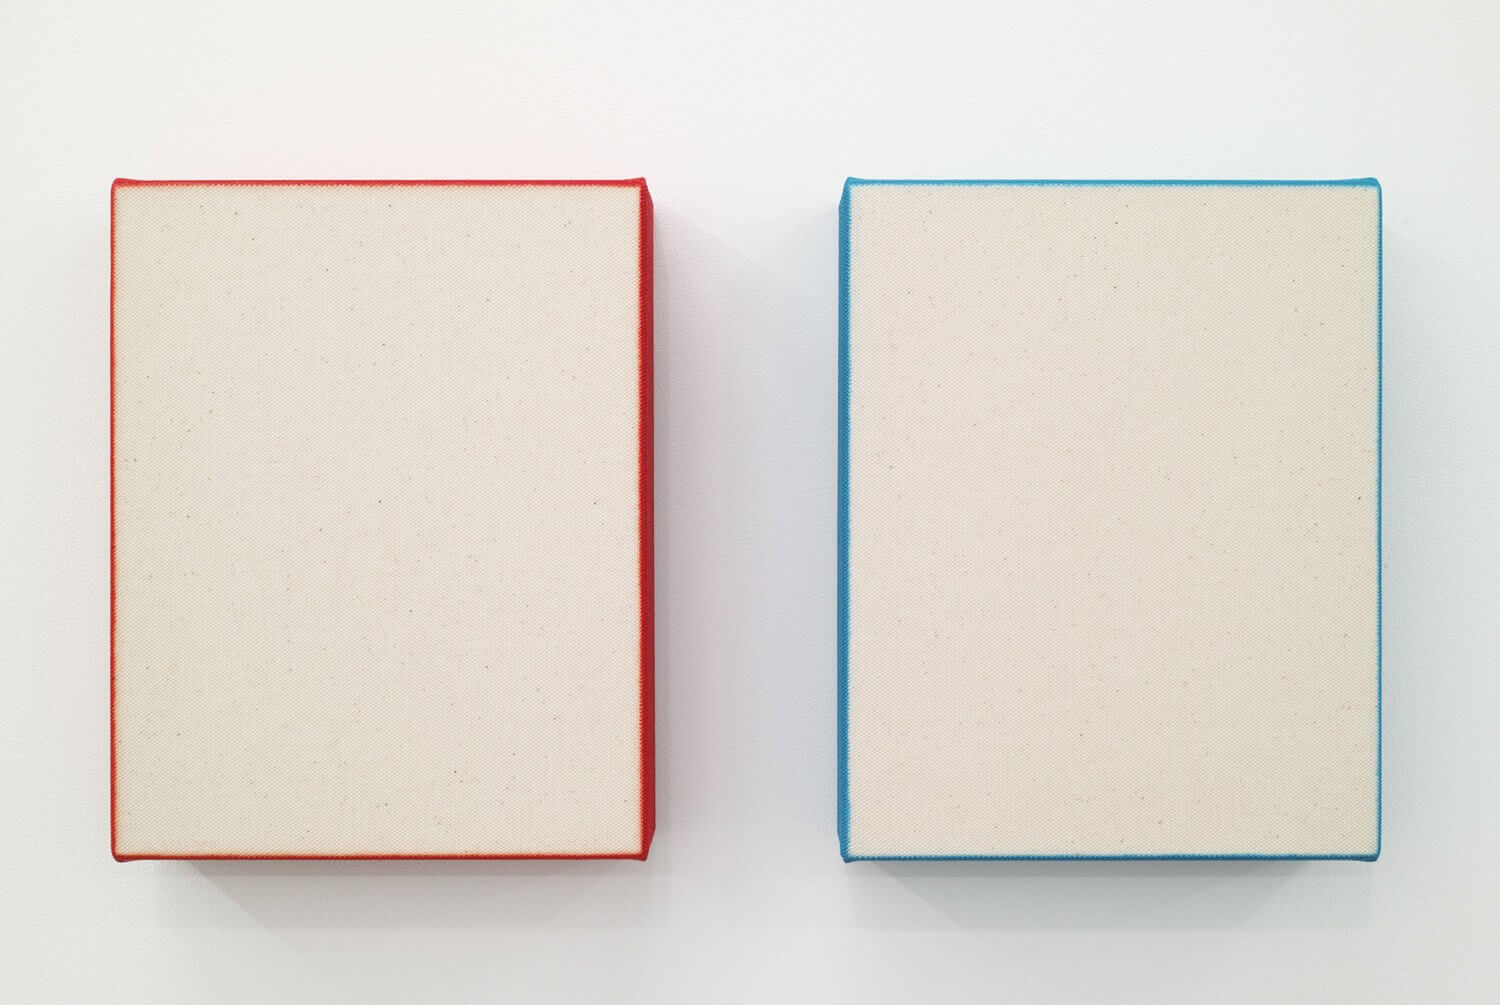 Text No.1117 / acrylic on cotton, 280 x 229 x 50 mm, each (set of 2), 2017